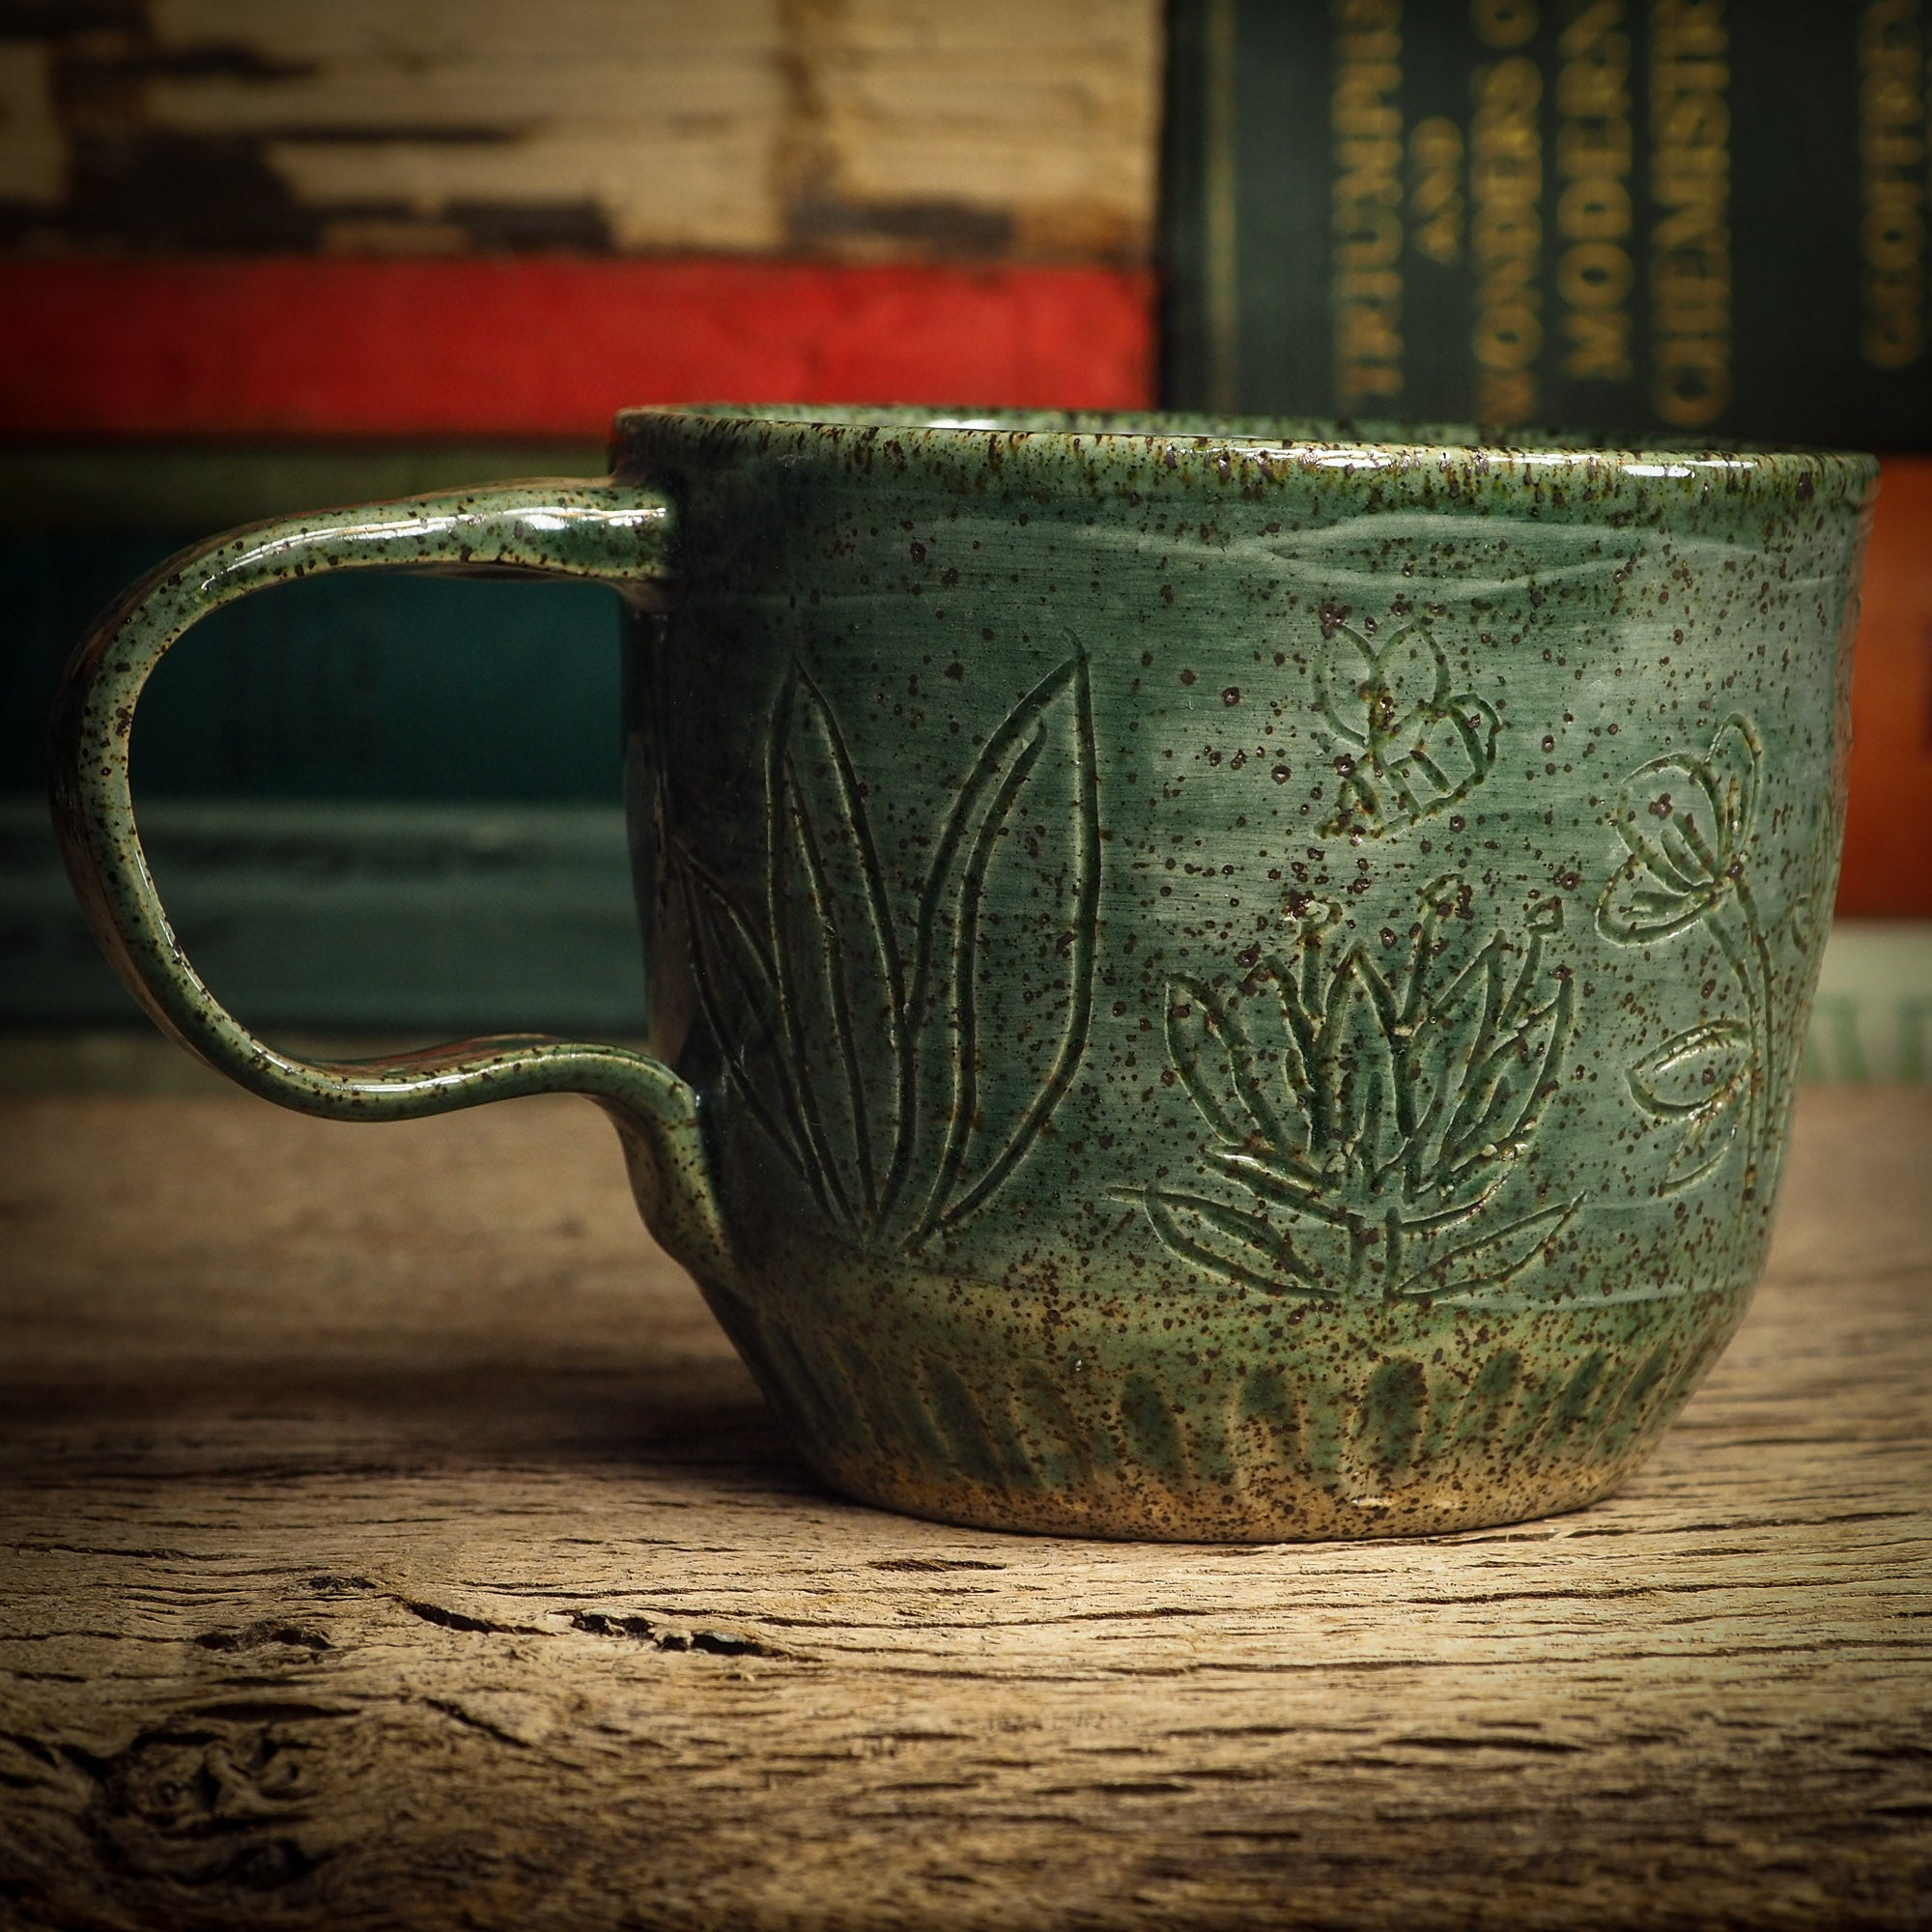 An original glazed ceramic mug by Idania Salcido, the artist behind Danita Art. It measures 3 x 3 x 3 Inches, with deep green hue glazes and hand decorated figures on the sides. Totally handmade in my studio, this is a unique piece that cannot be repeated. Food and drink safe, hand wash only.